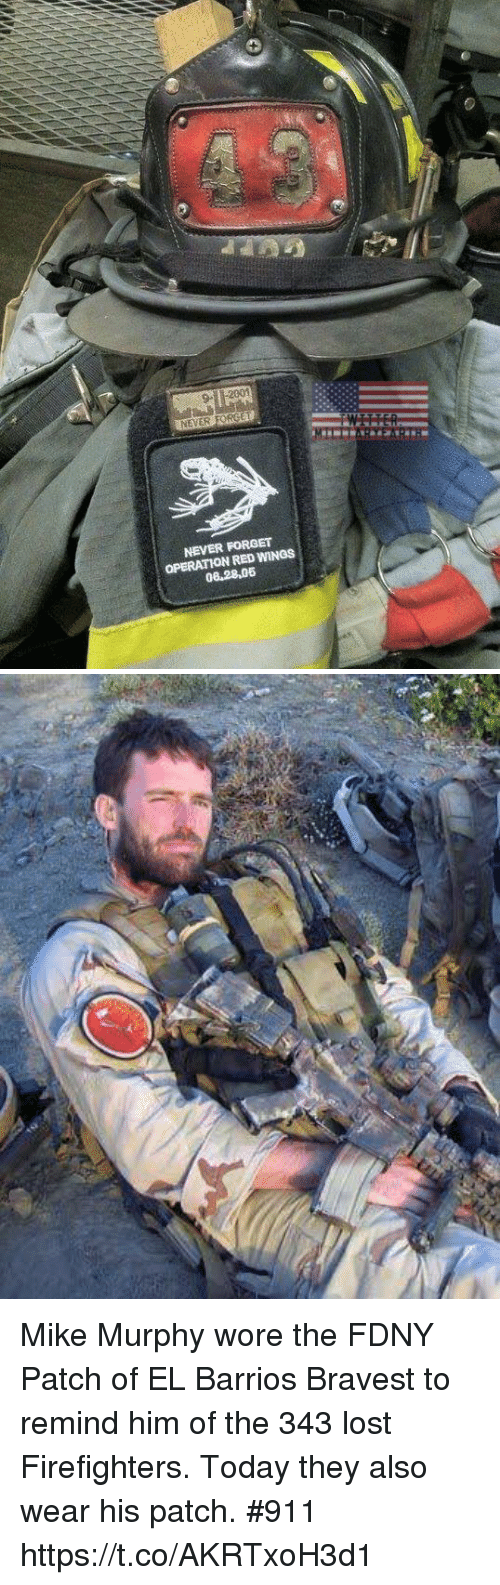 Forgetfulness: NEVER FORGET  OPERATION RED WINGS Mike Murphy wore the FDNY Patch of EL Barrios Bravest to remind him of the 343 lost Firefighters. Today they also wear his patch. #911 https://t.co/AKRTxoH3d1